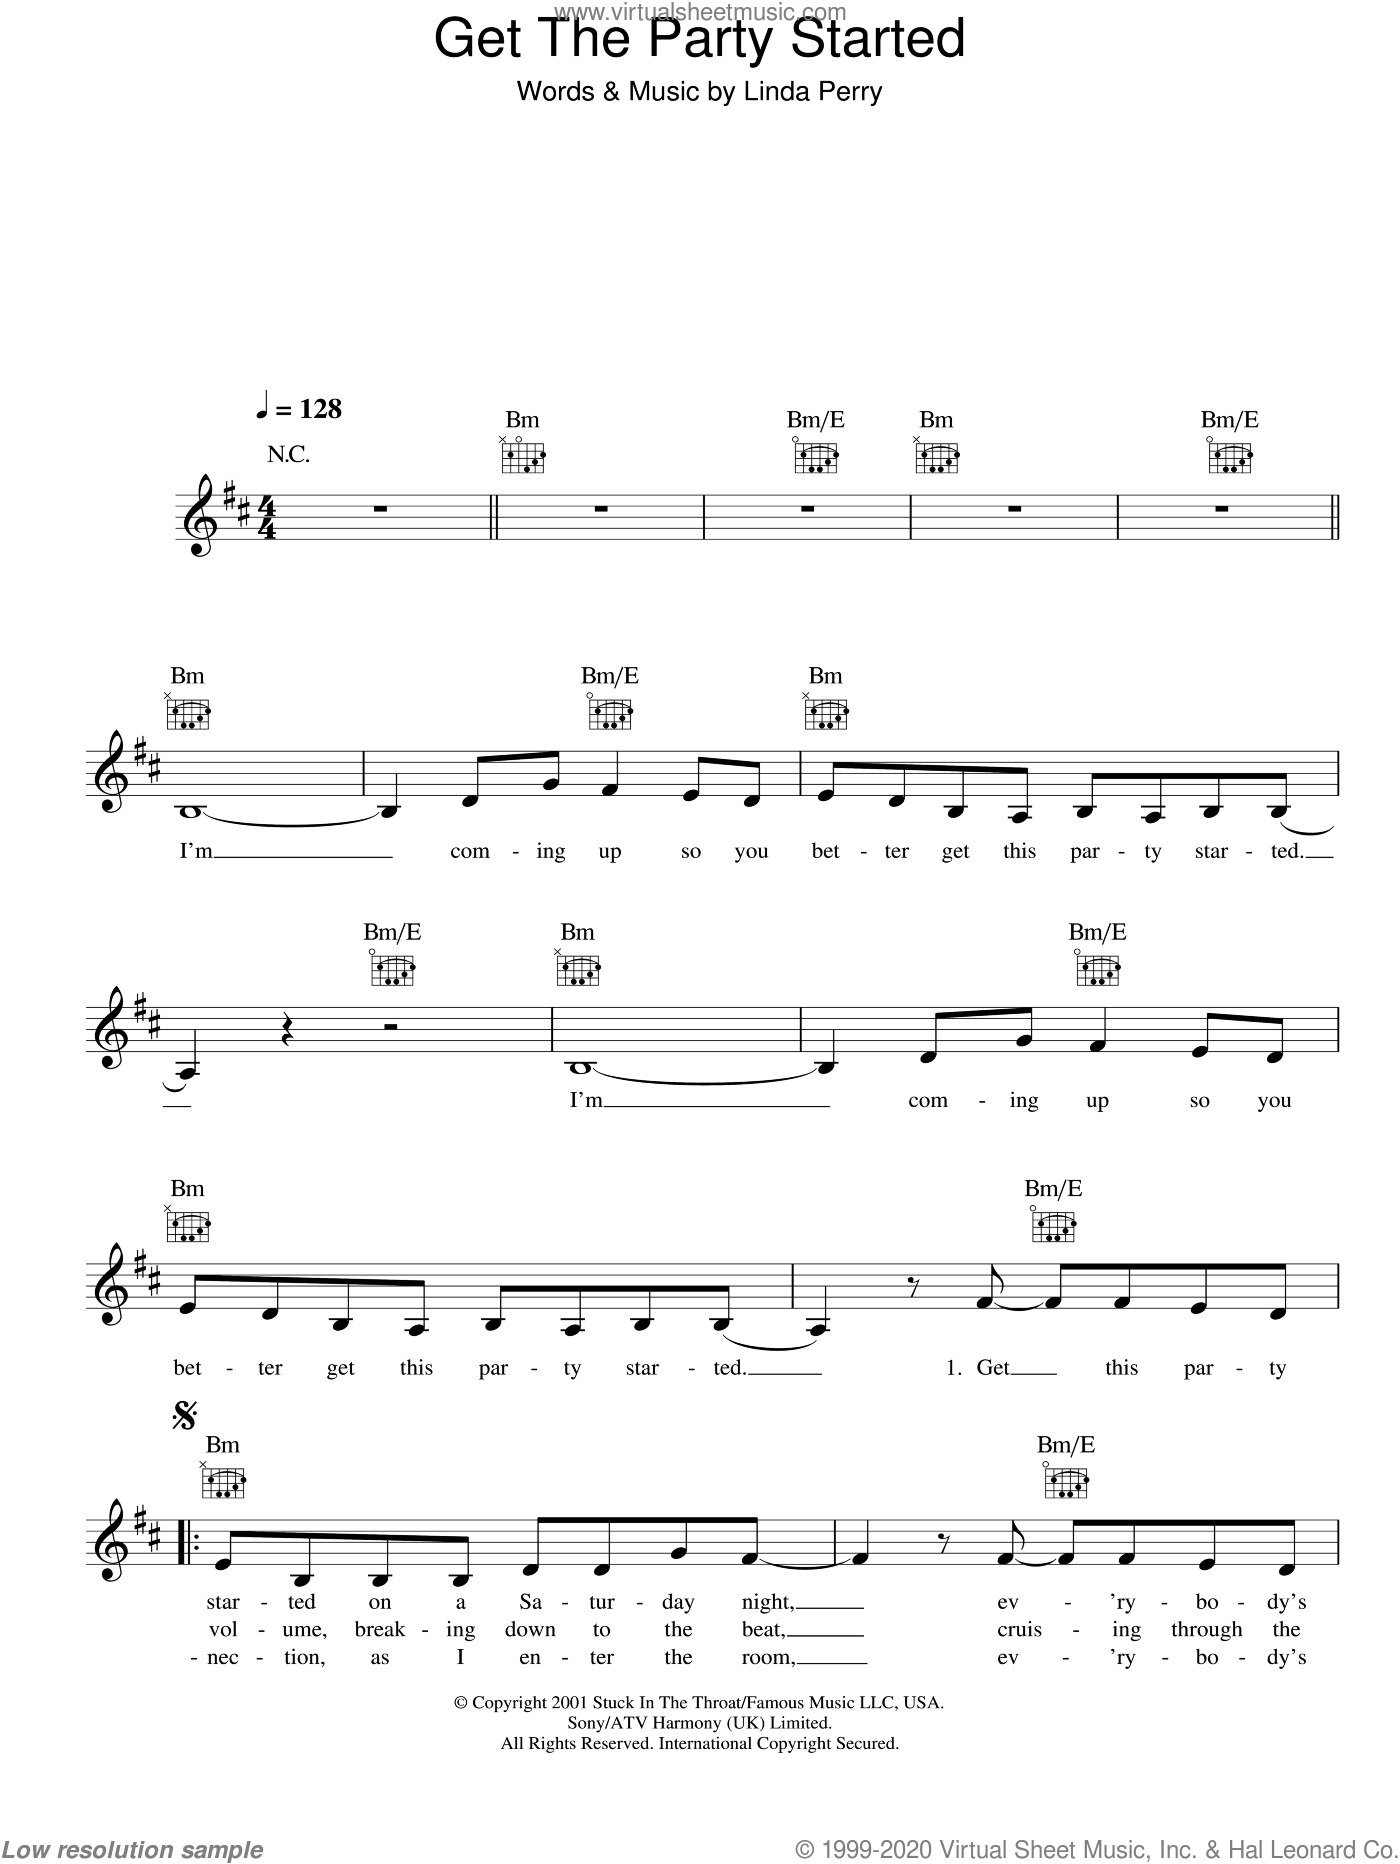 Get The Party Started sheet music for voice and other instruments (fake book) by Linda Perry and Miscellaneous. Score Image Preview.